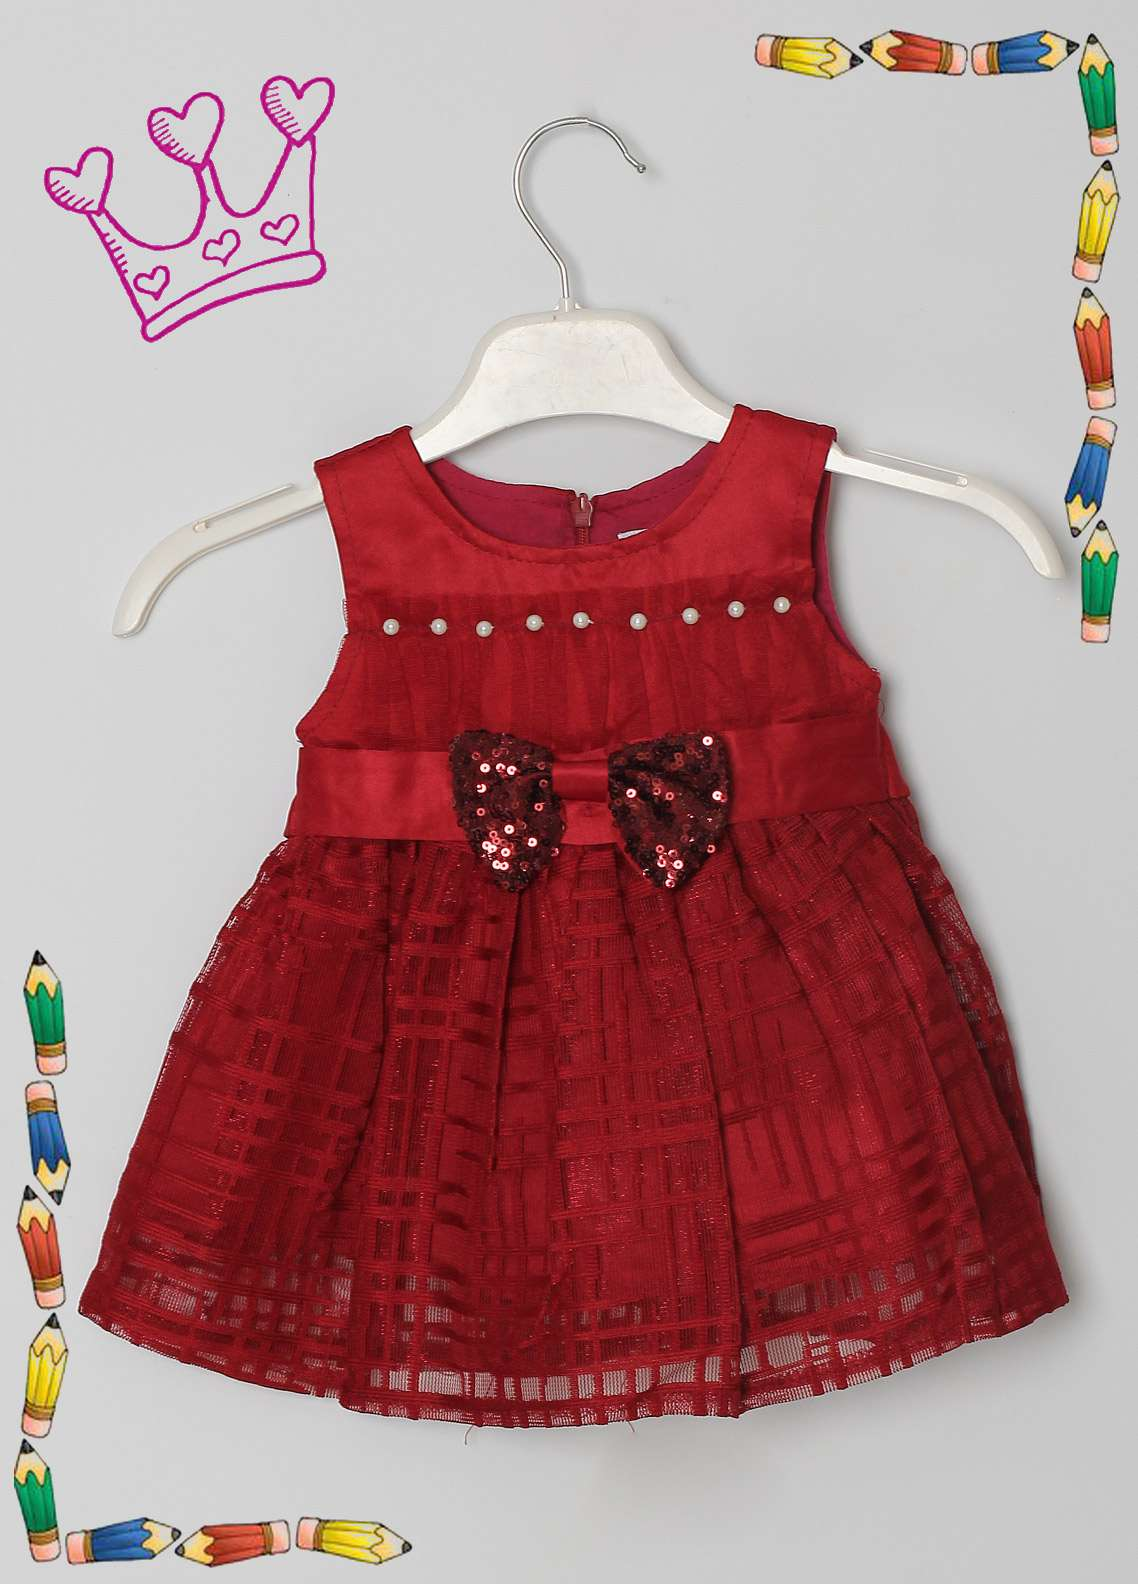 Sanaulla Exclusive Range Cotton Net Fancy Frocks for Girls -  8522 Maroon